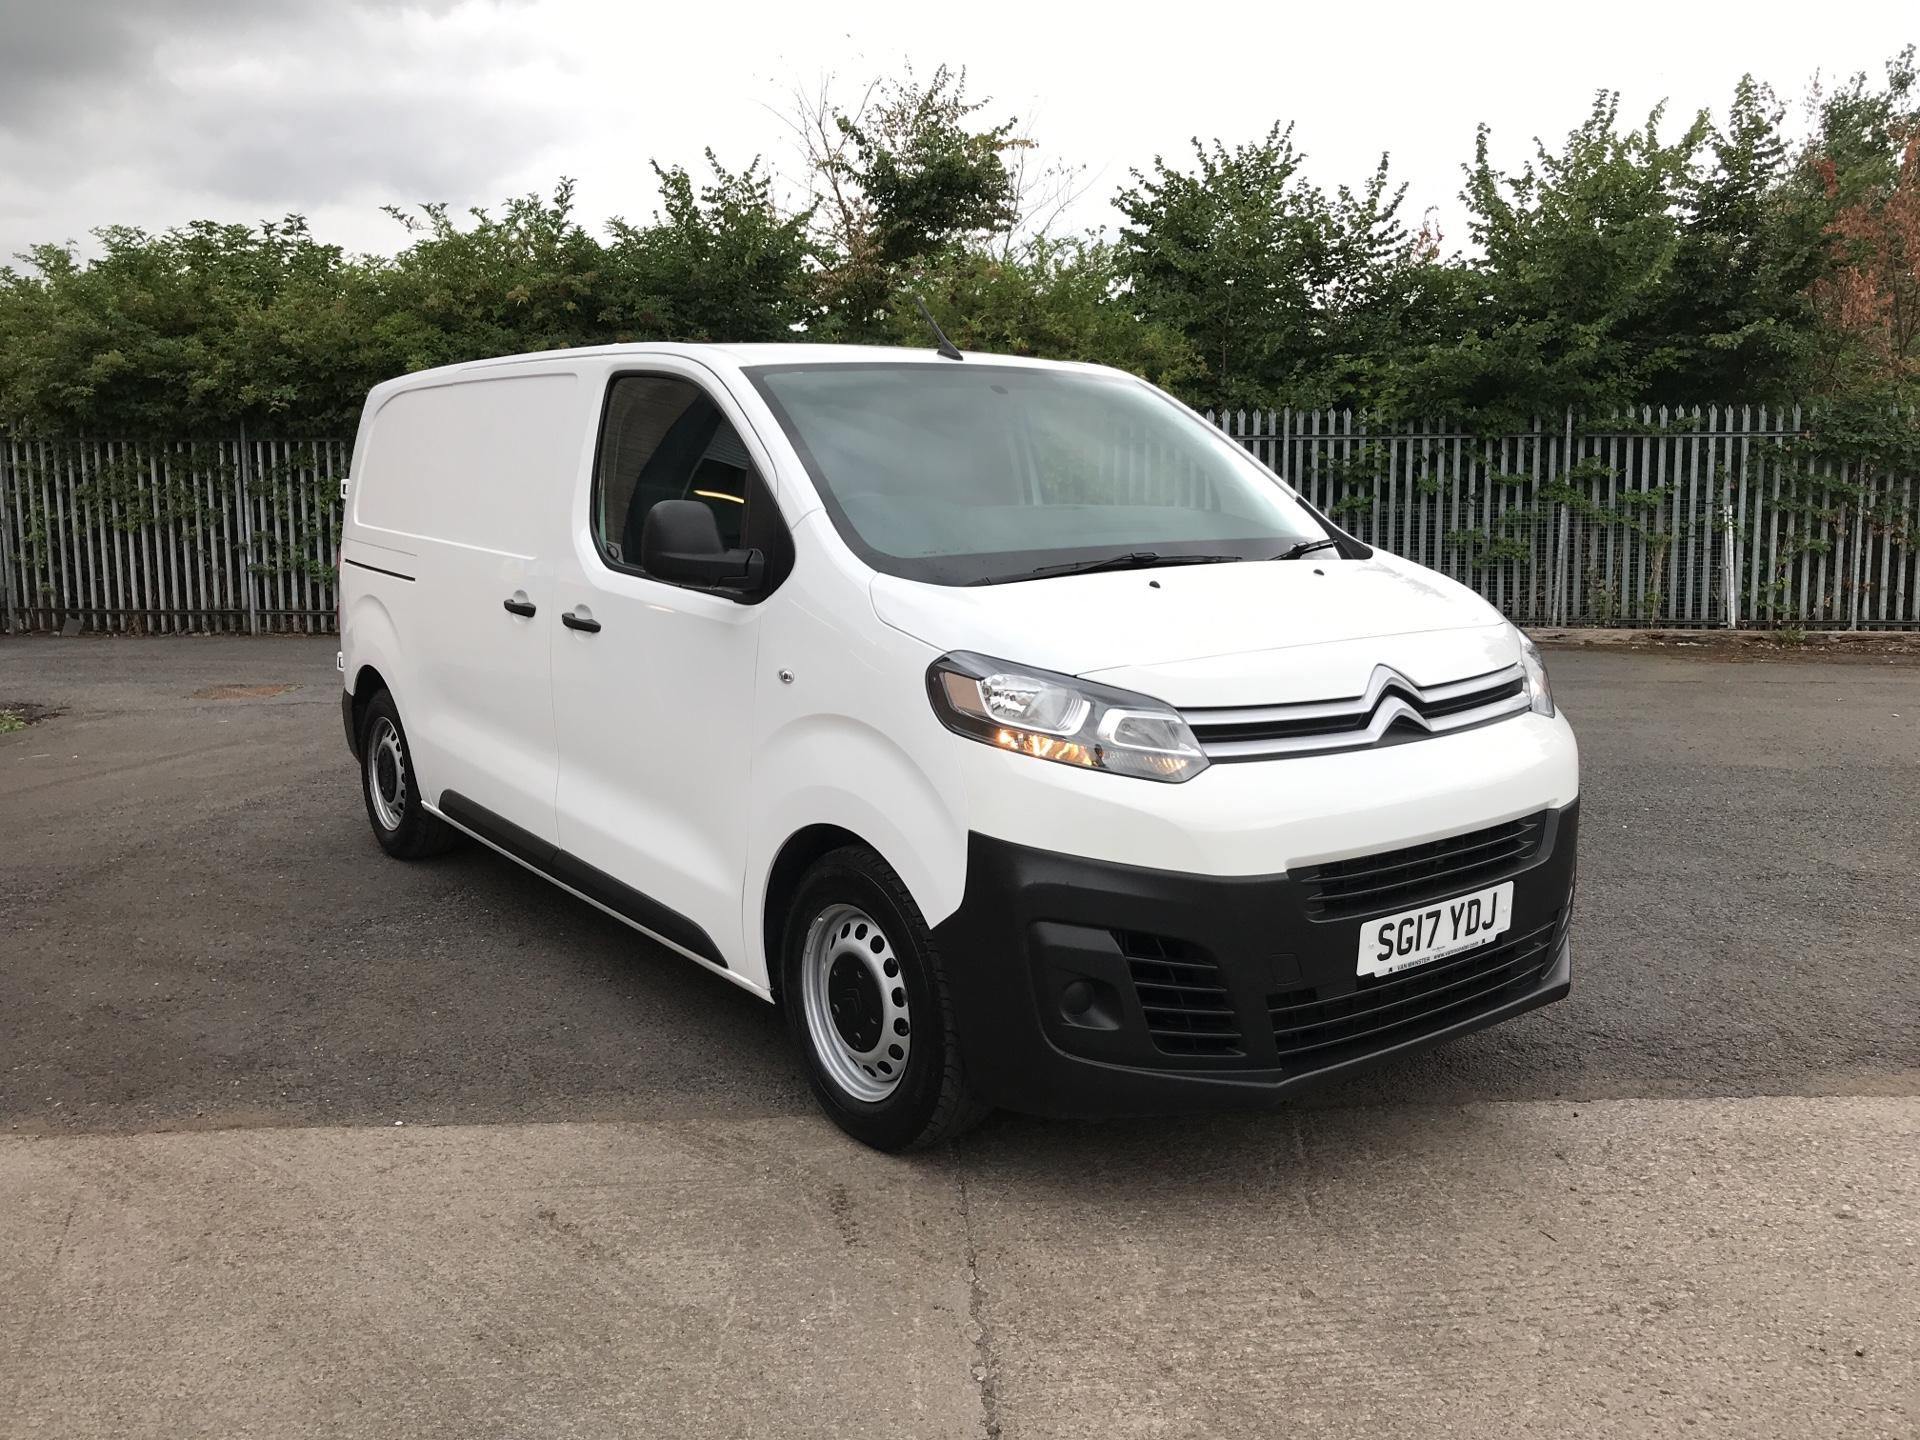 2017 Citroen Dispatch M DIESEL 1000 1.6 BLUEHDI 115PS ENTERPRISE (SG17YDJ)